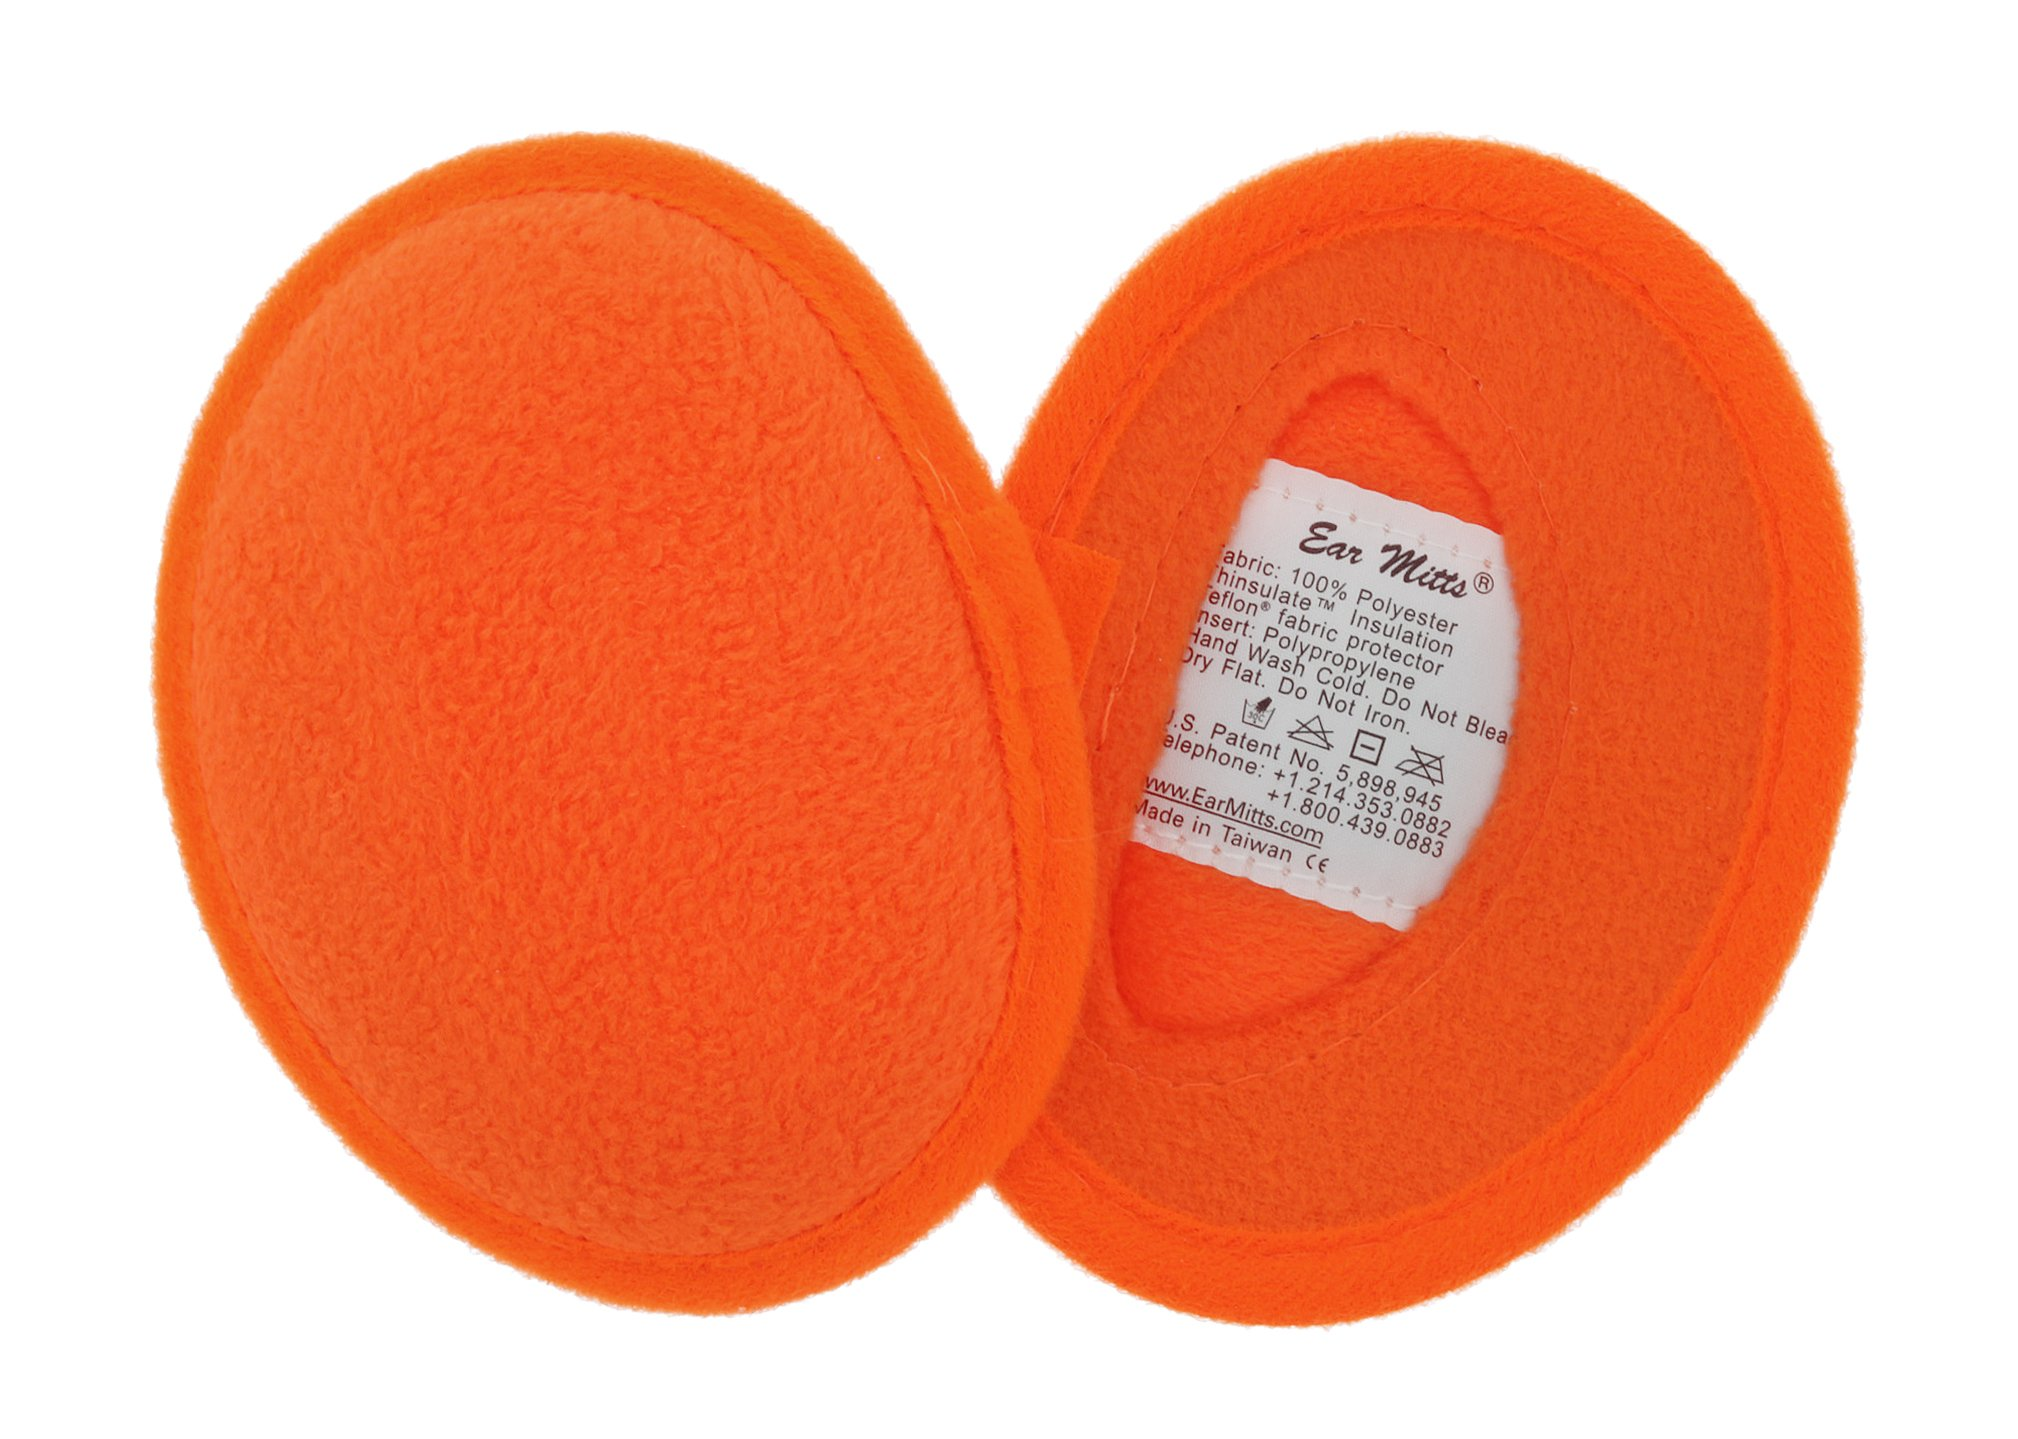 Ear Mitts Bandless Ear Muffs For Men, Safety Orange Fleece Ear Warmers, Regular